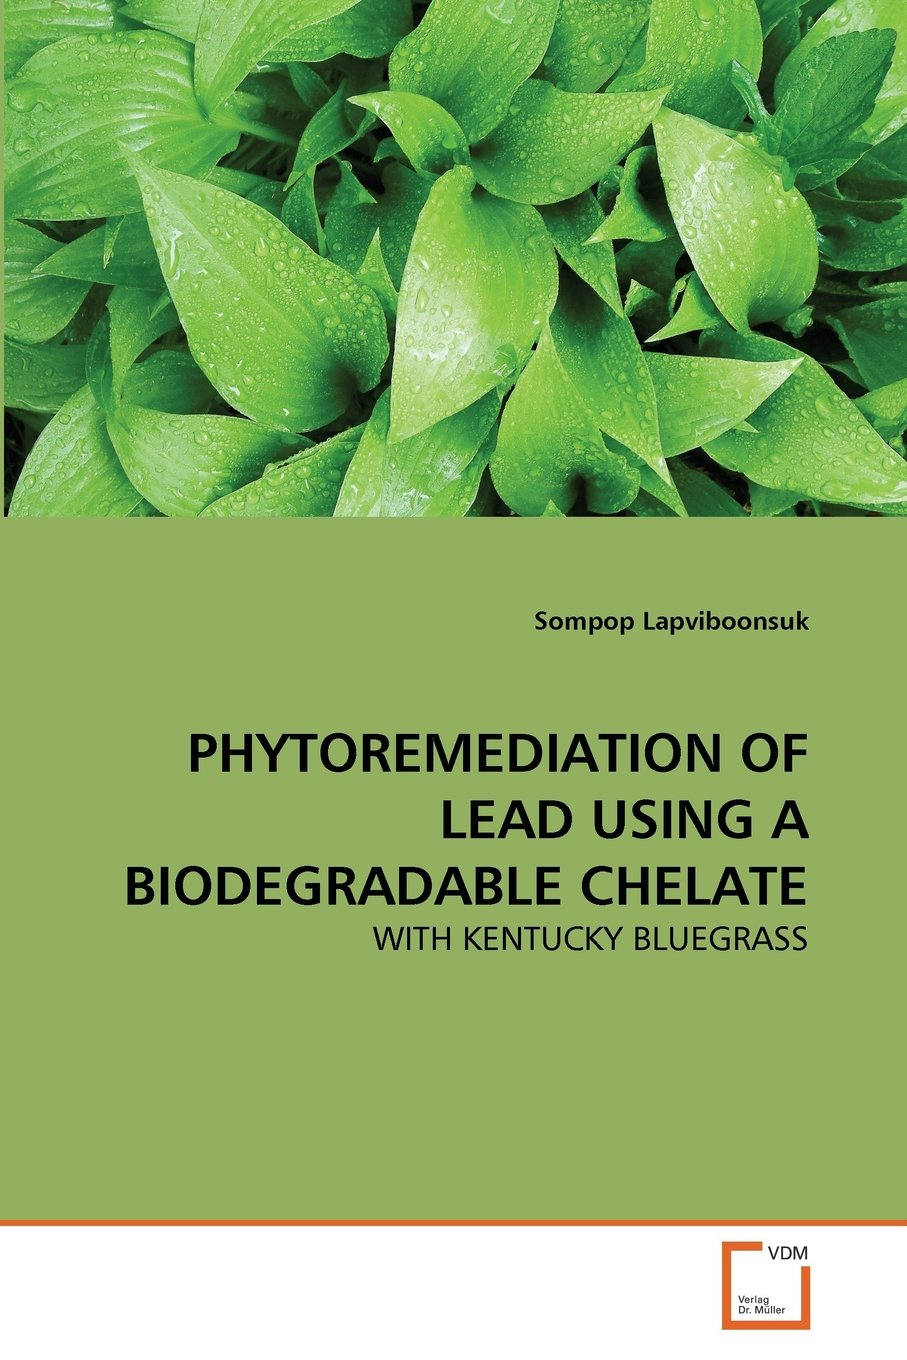 PHYTOREMEDIATION OF LEAD USING A BIODEGRADABLE CHELATE: Amazon.es ...